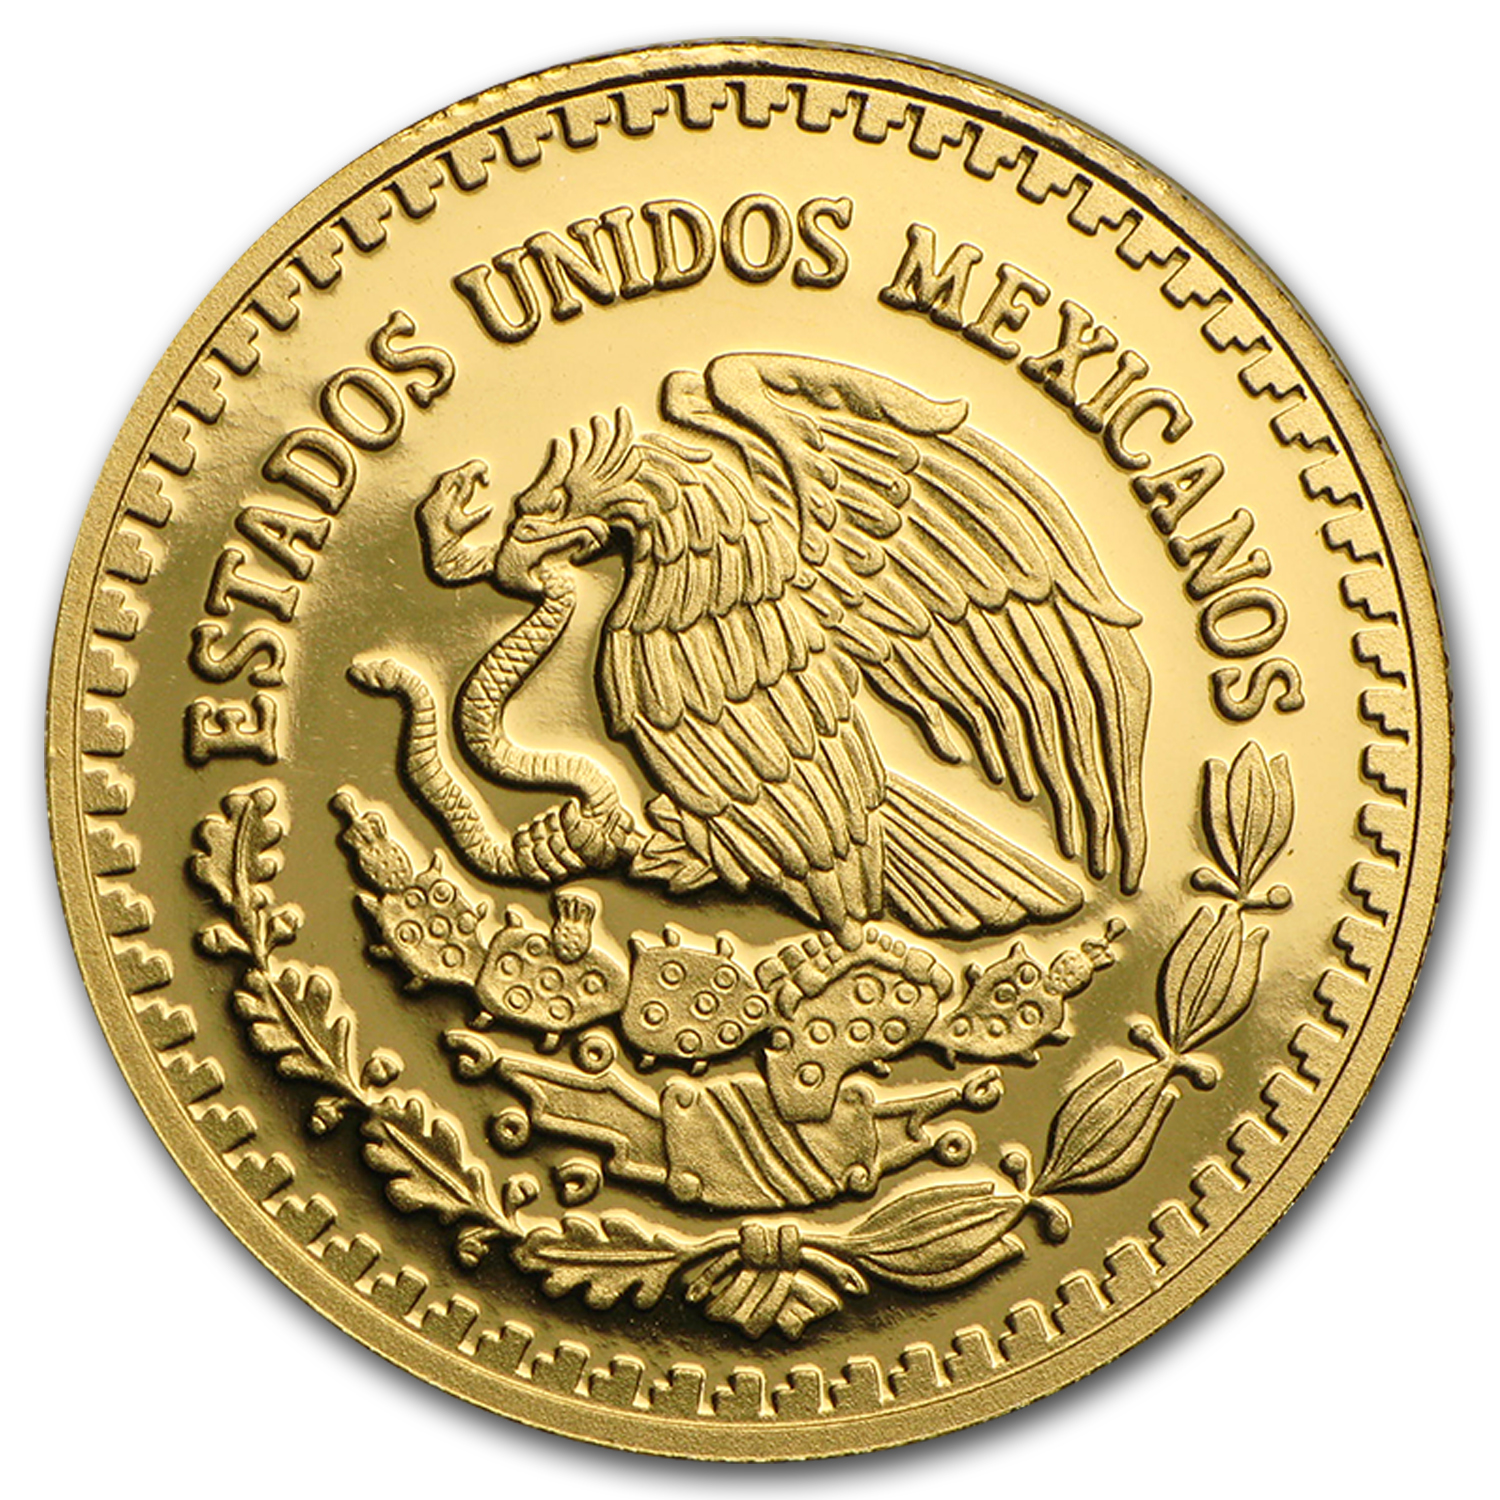 2015 Mexico 1/4 oz Proof Gold Libertad